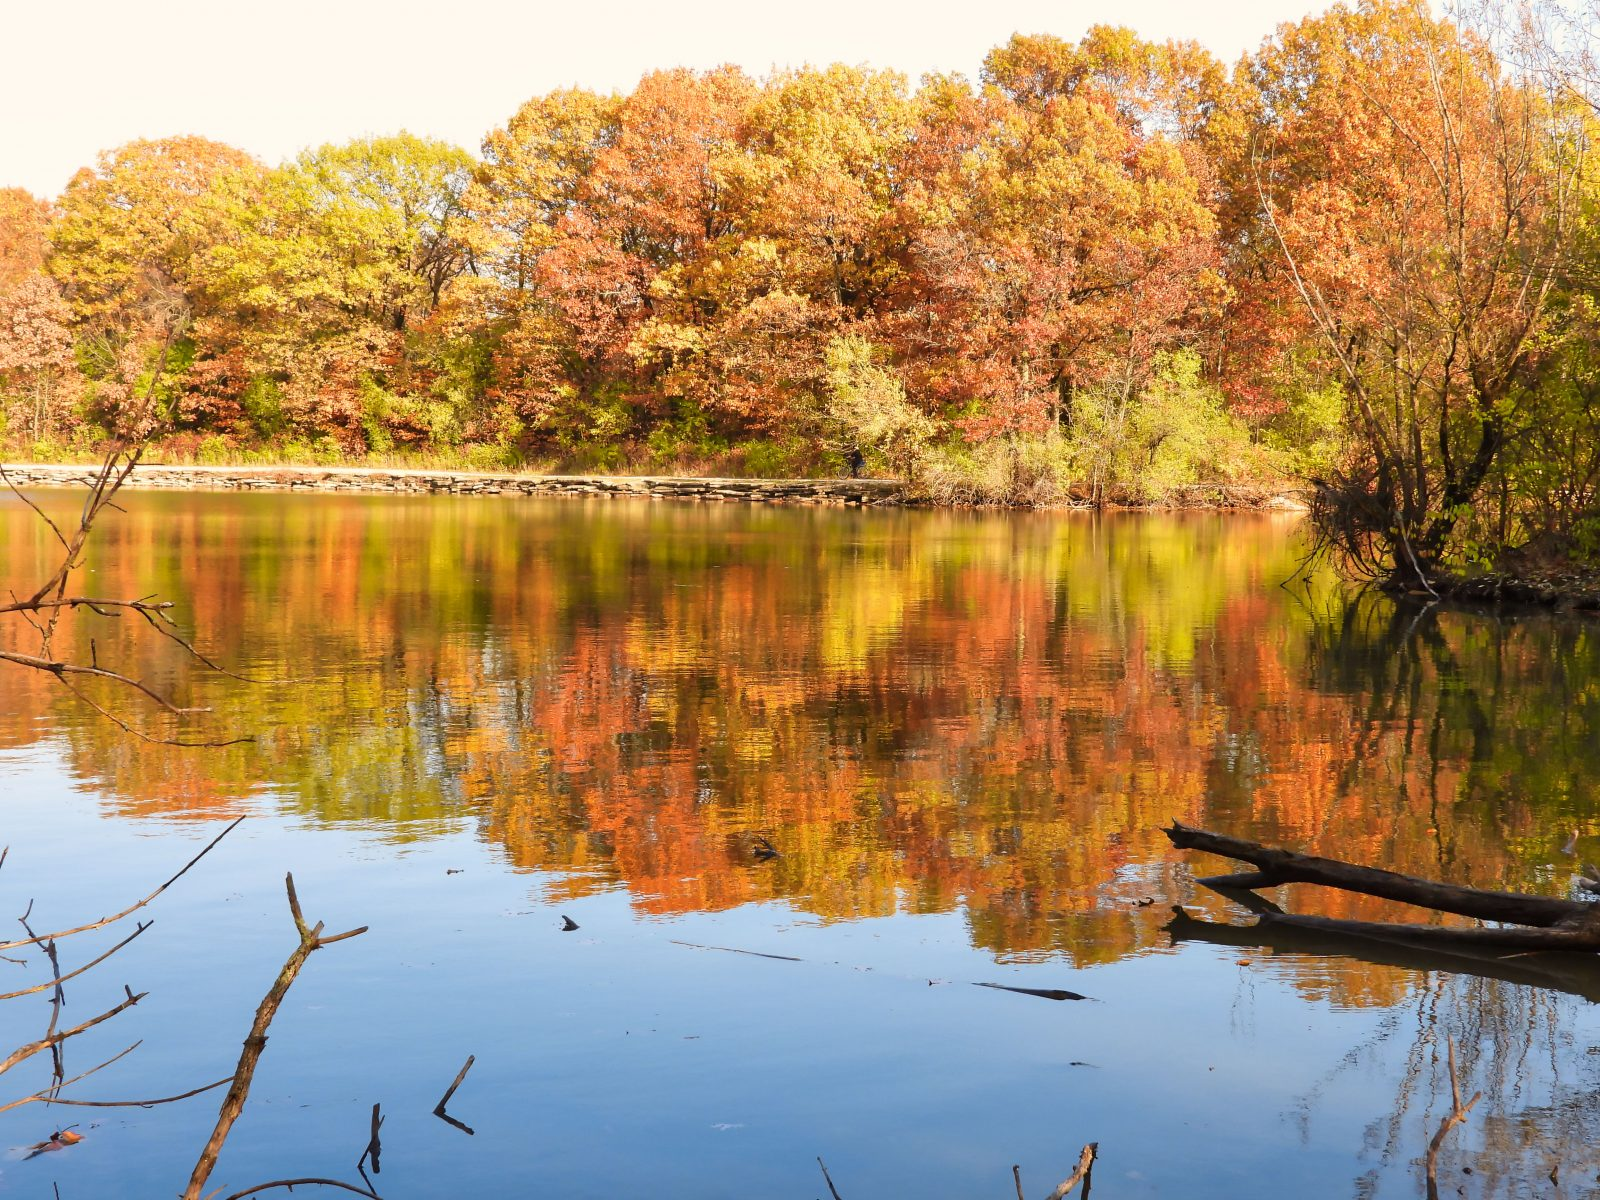 Orange, Red and Yellow Leaves Filled Forest of Trees Lined a Lake and Reflected in Lake Water on Beautiful Autumn Landscape View on a Fall Day in October